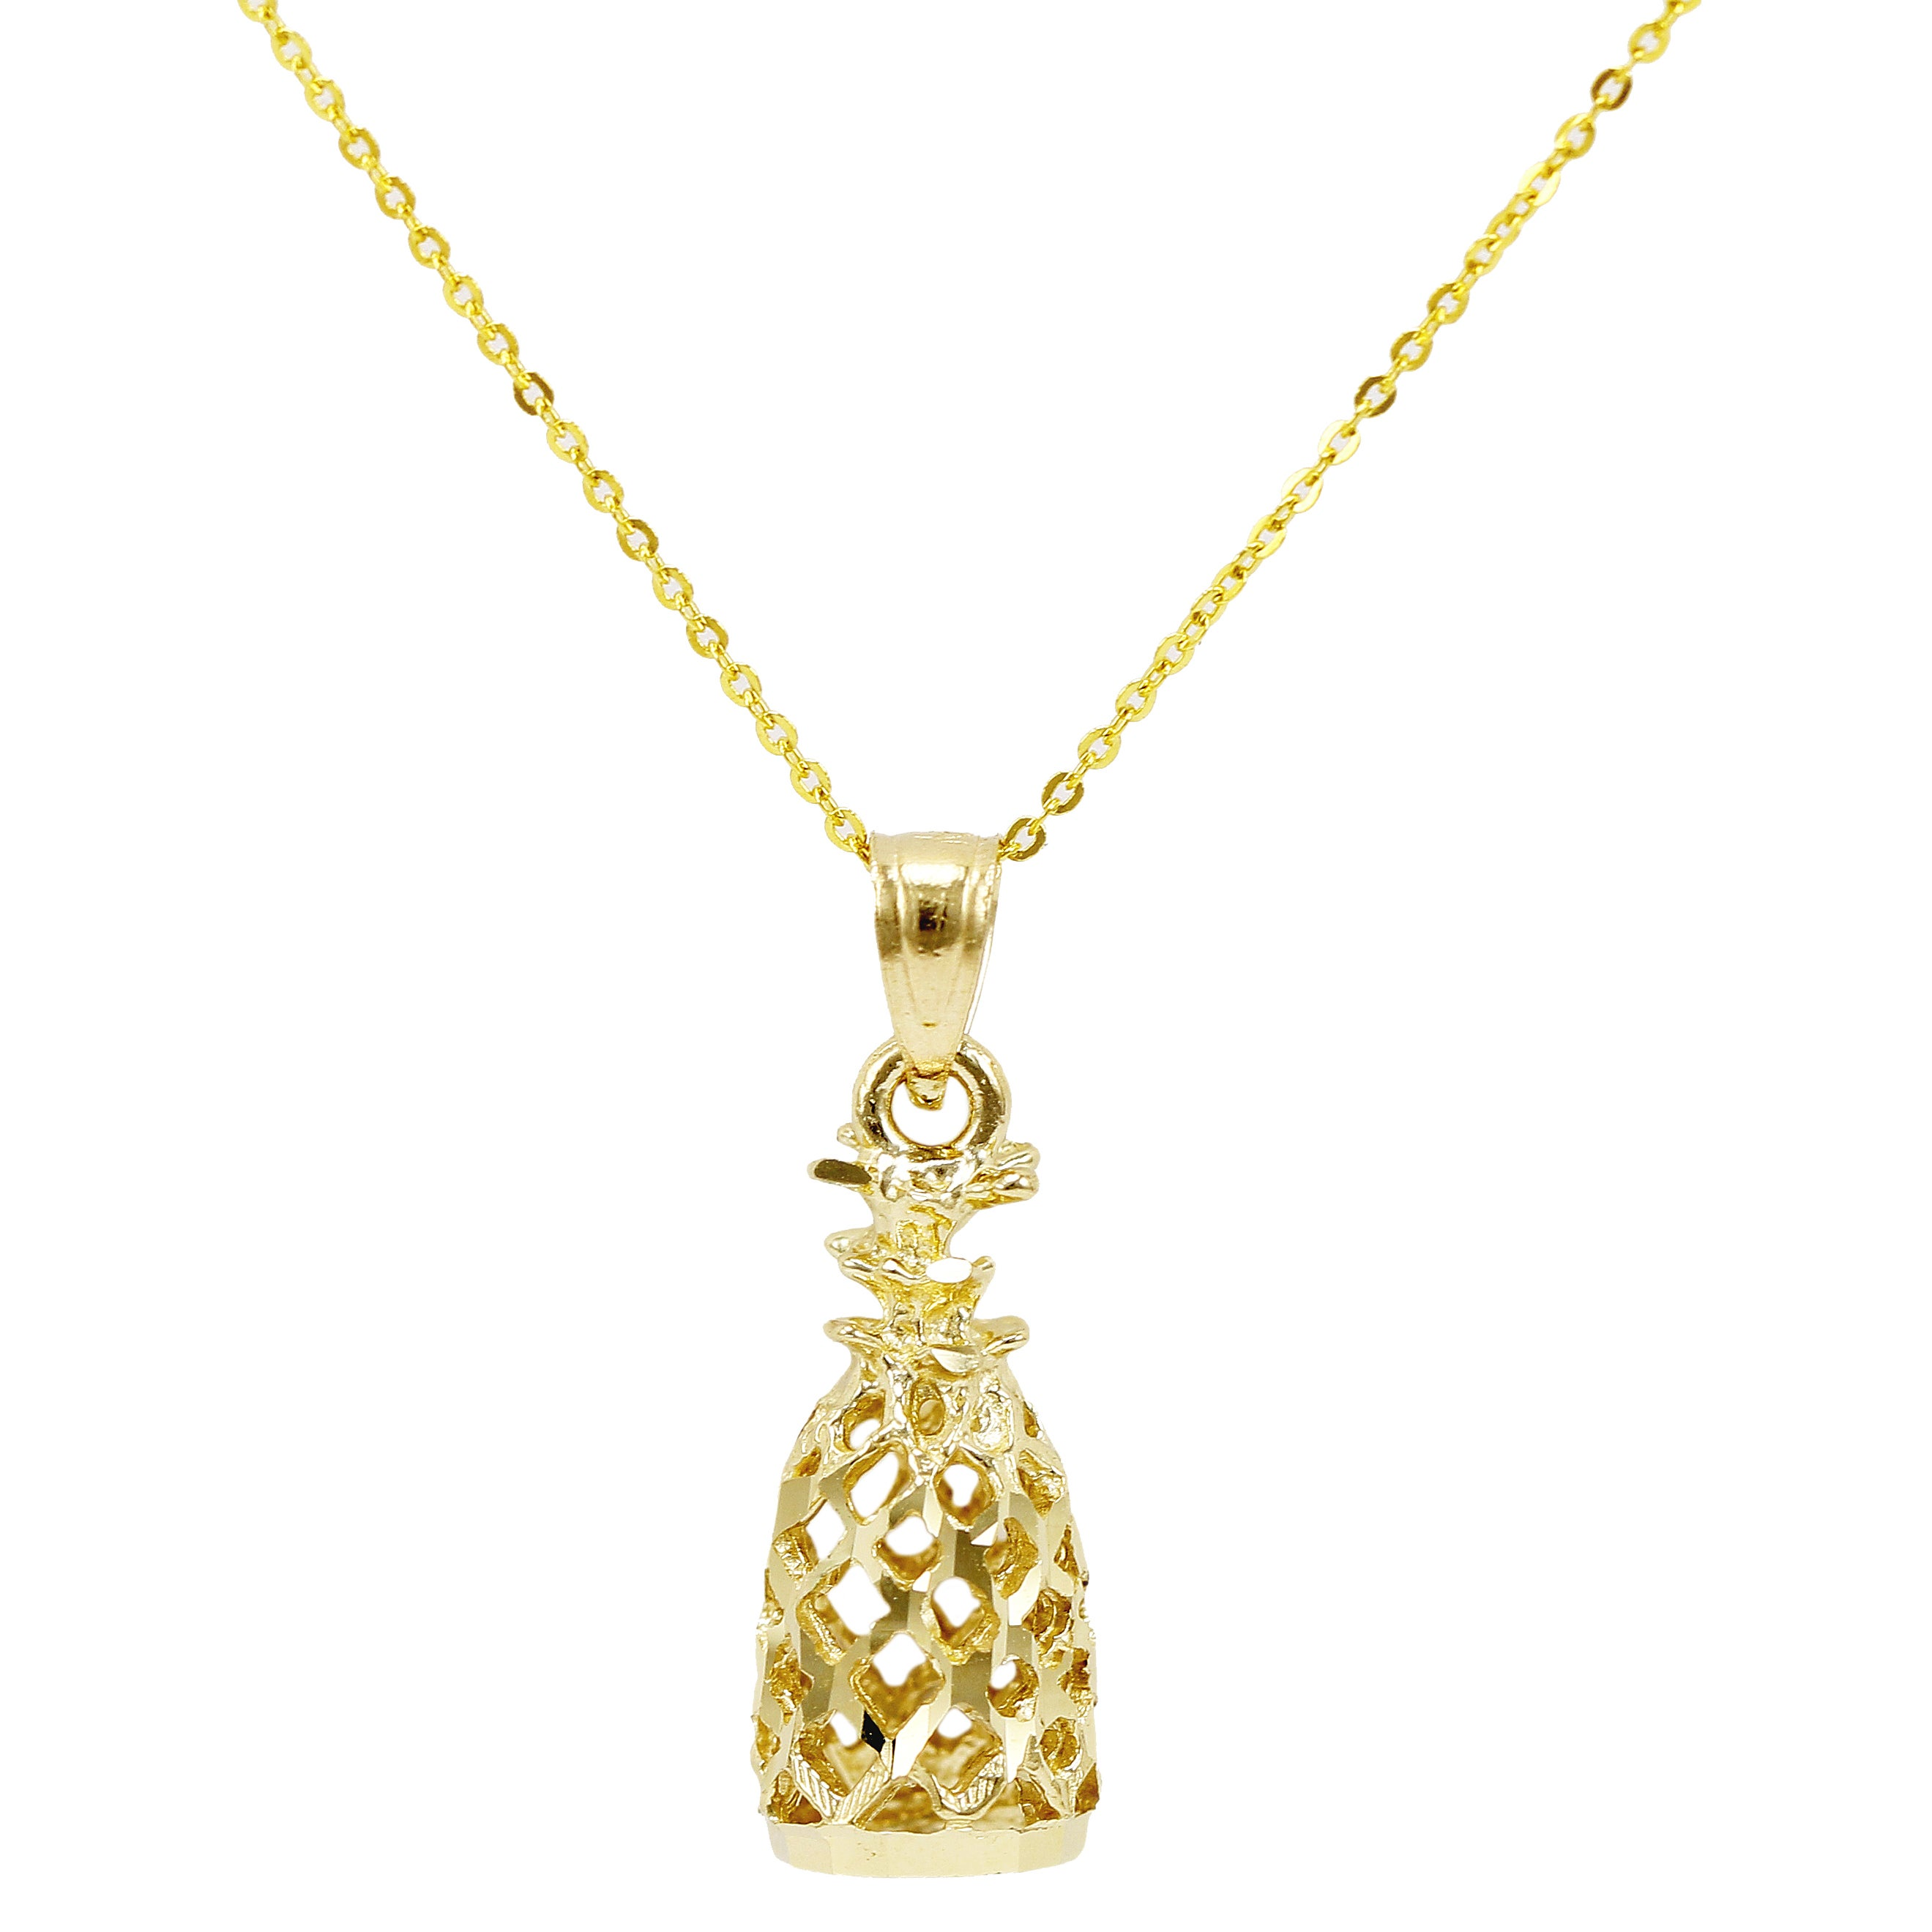 pieces your they yellow of warmth page hospitality symbolize sweet speaks d vermeil and cheer gold pineapple all necklace friendship our wholeheartedly product s good pendant to heart the